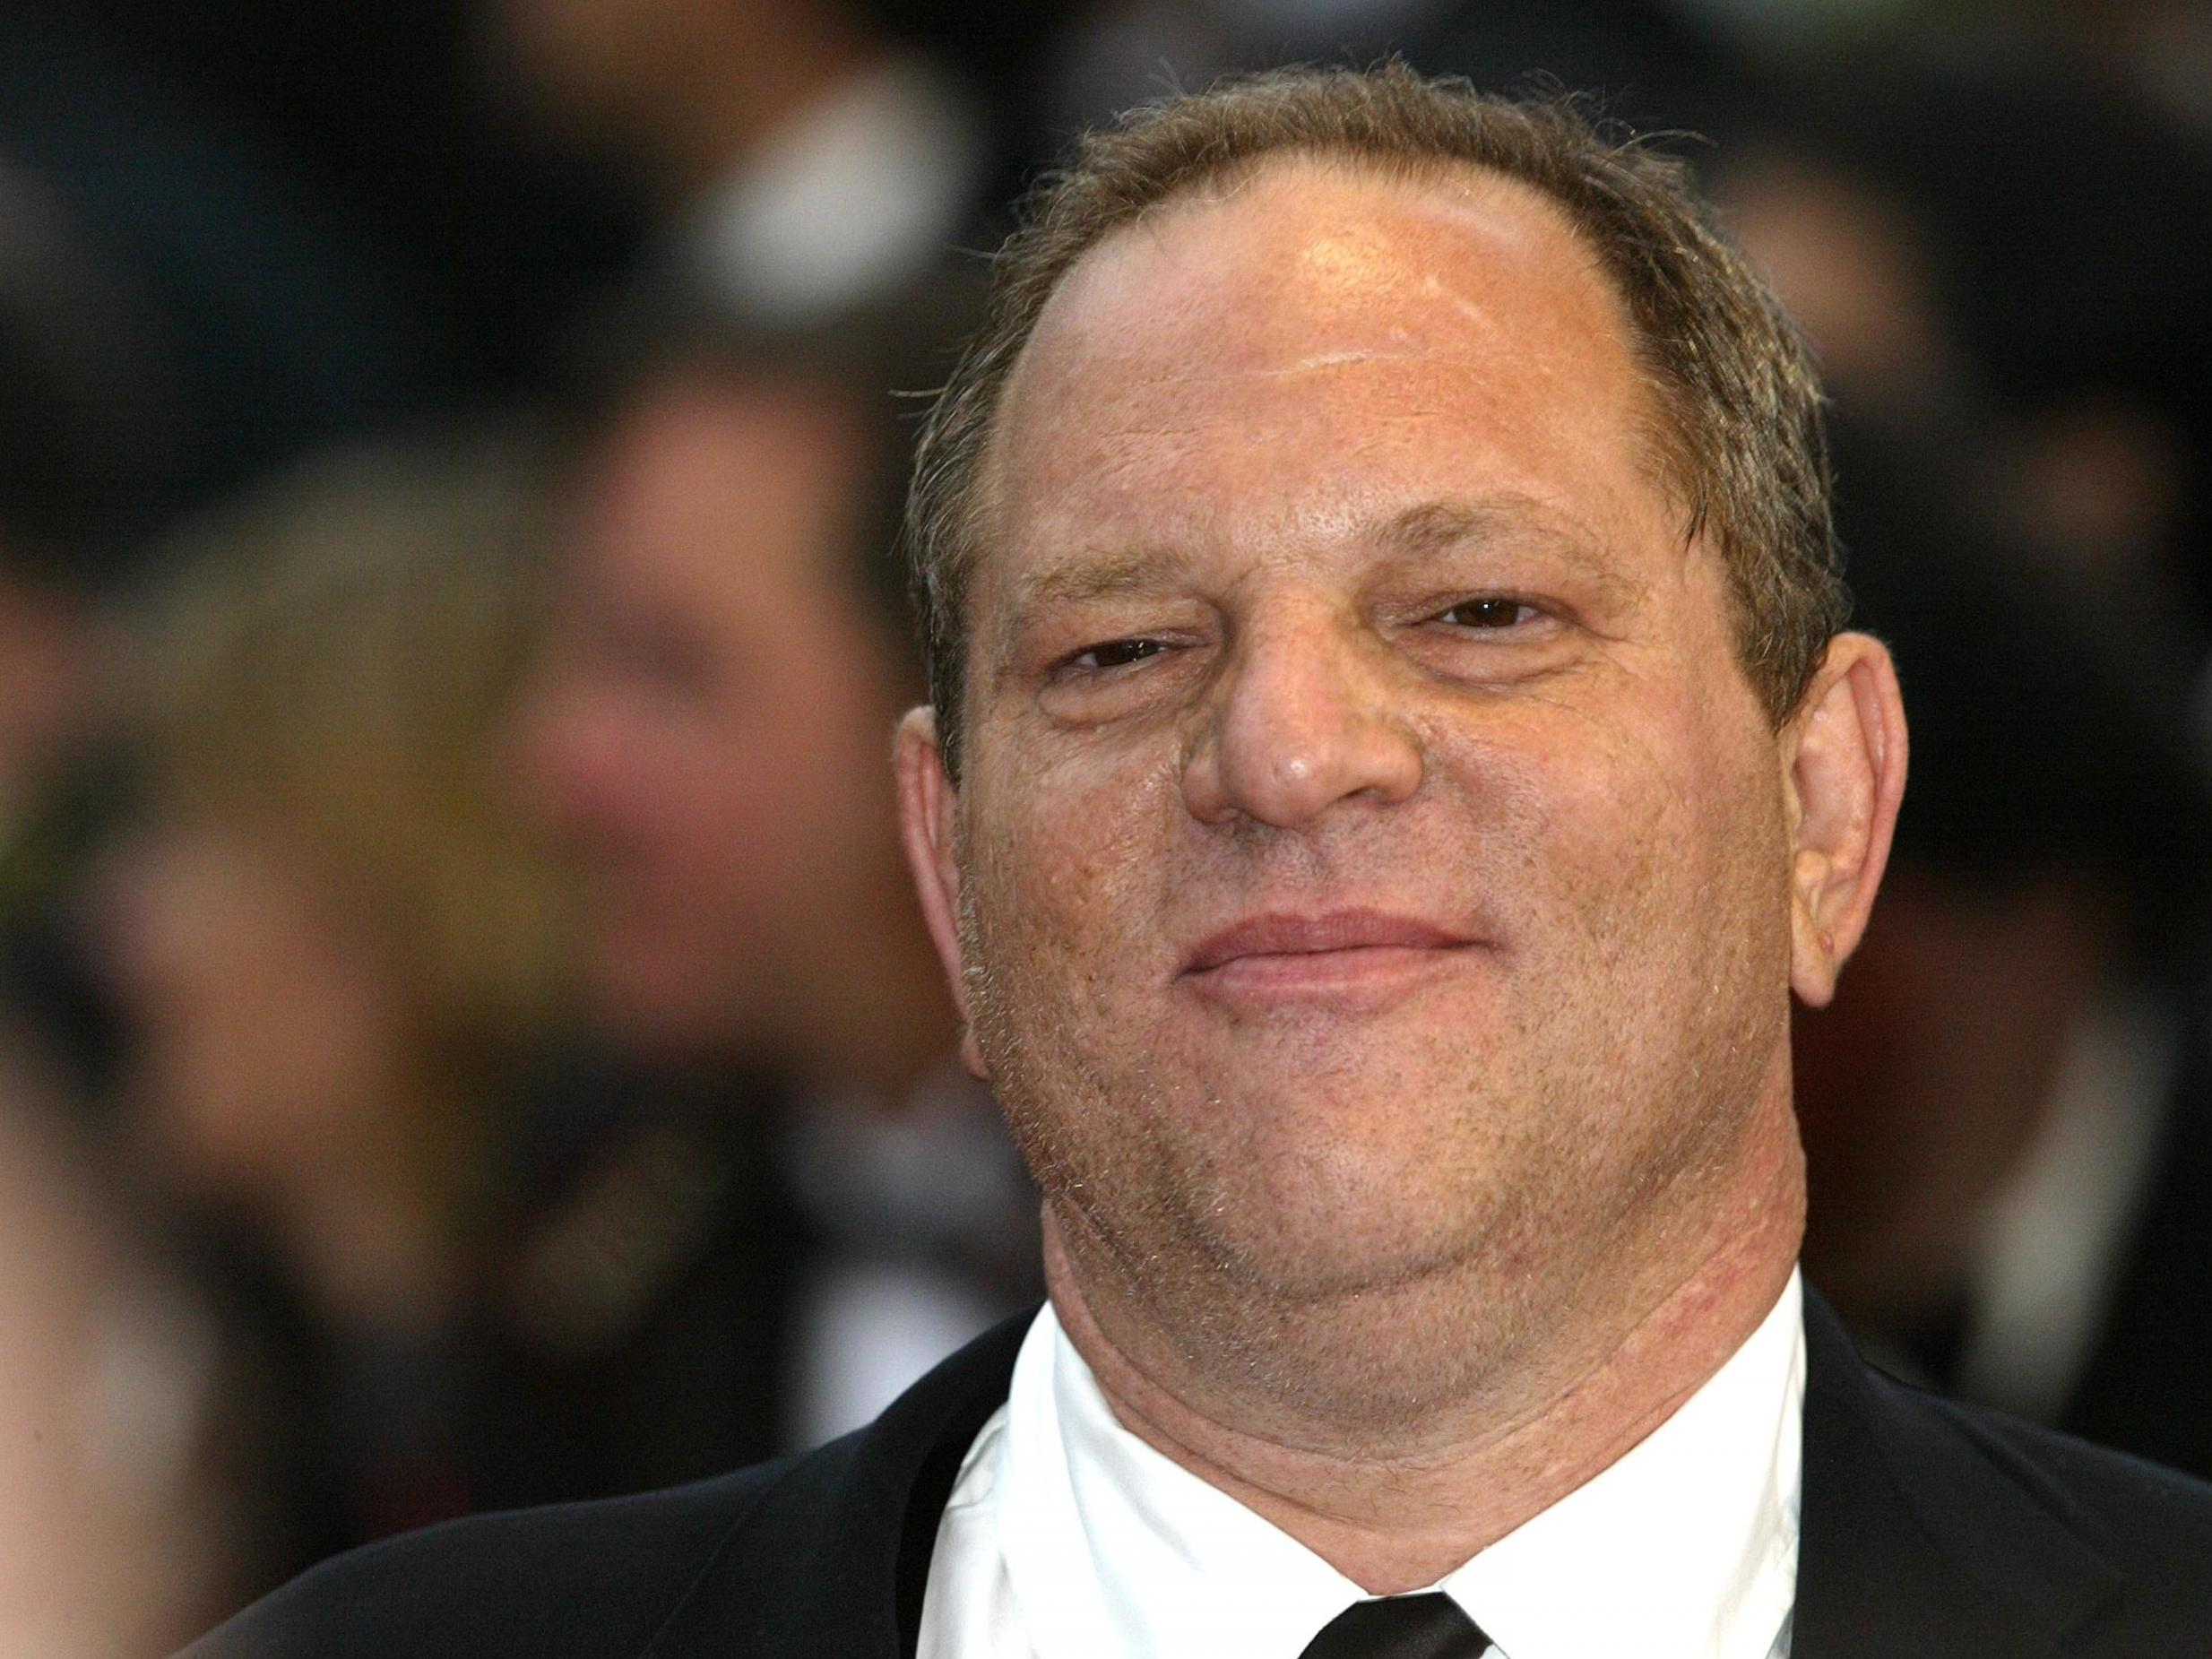 Harvey Weinstein accusers say he's 'trying to gaslight society'